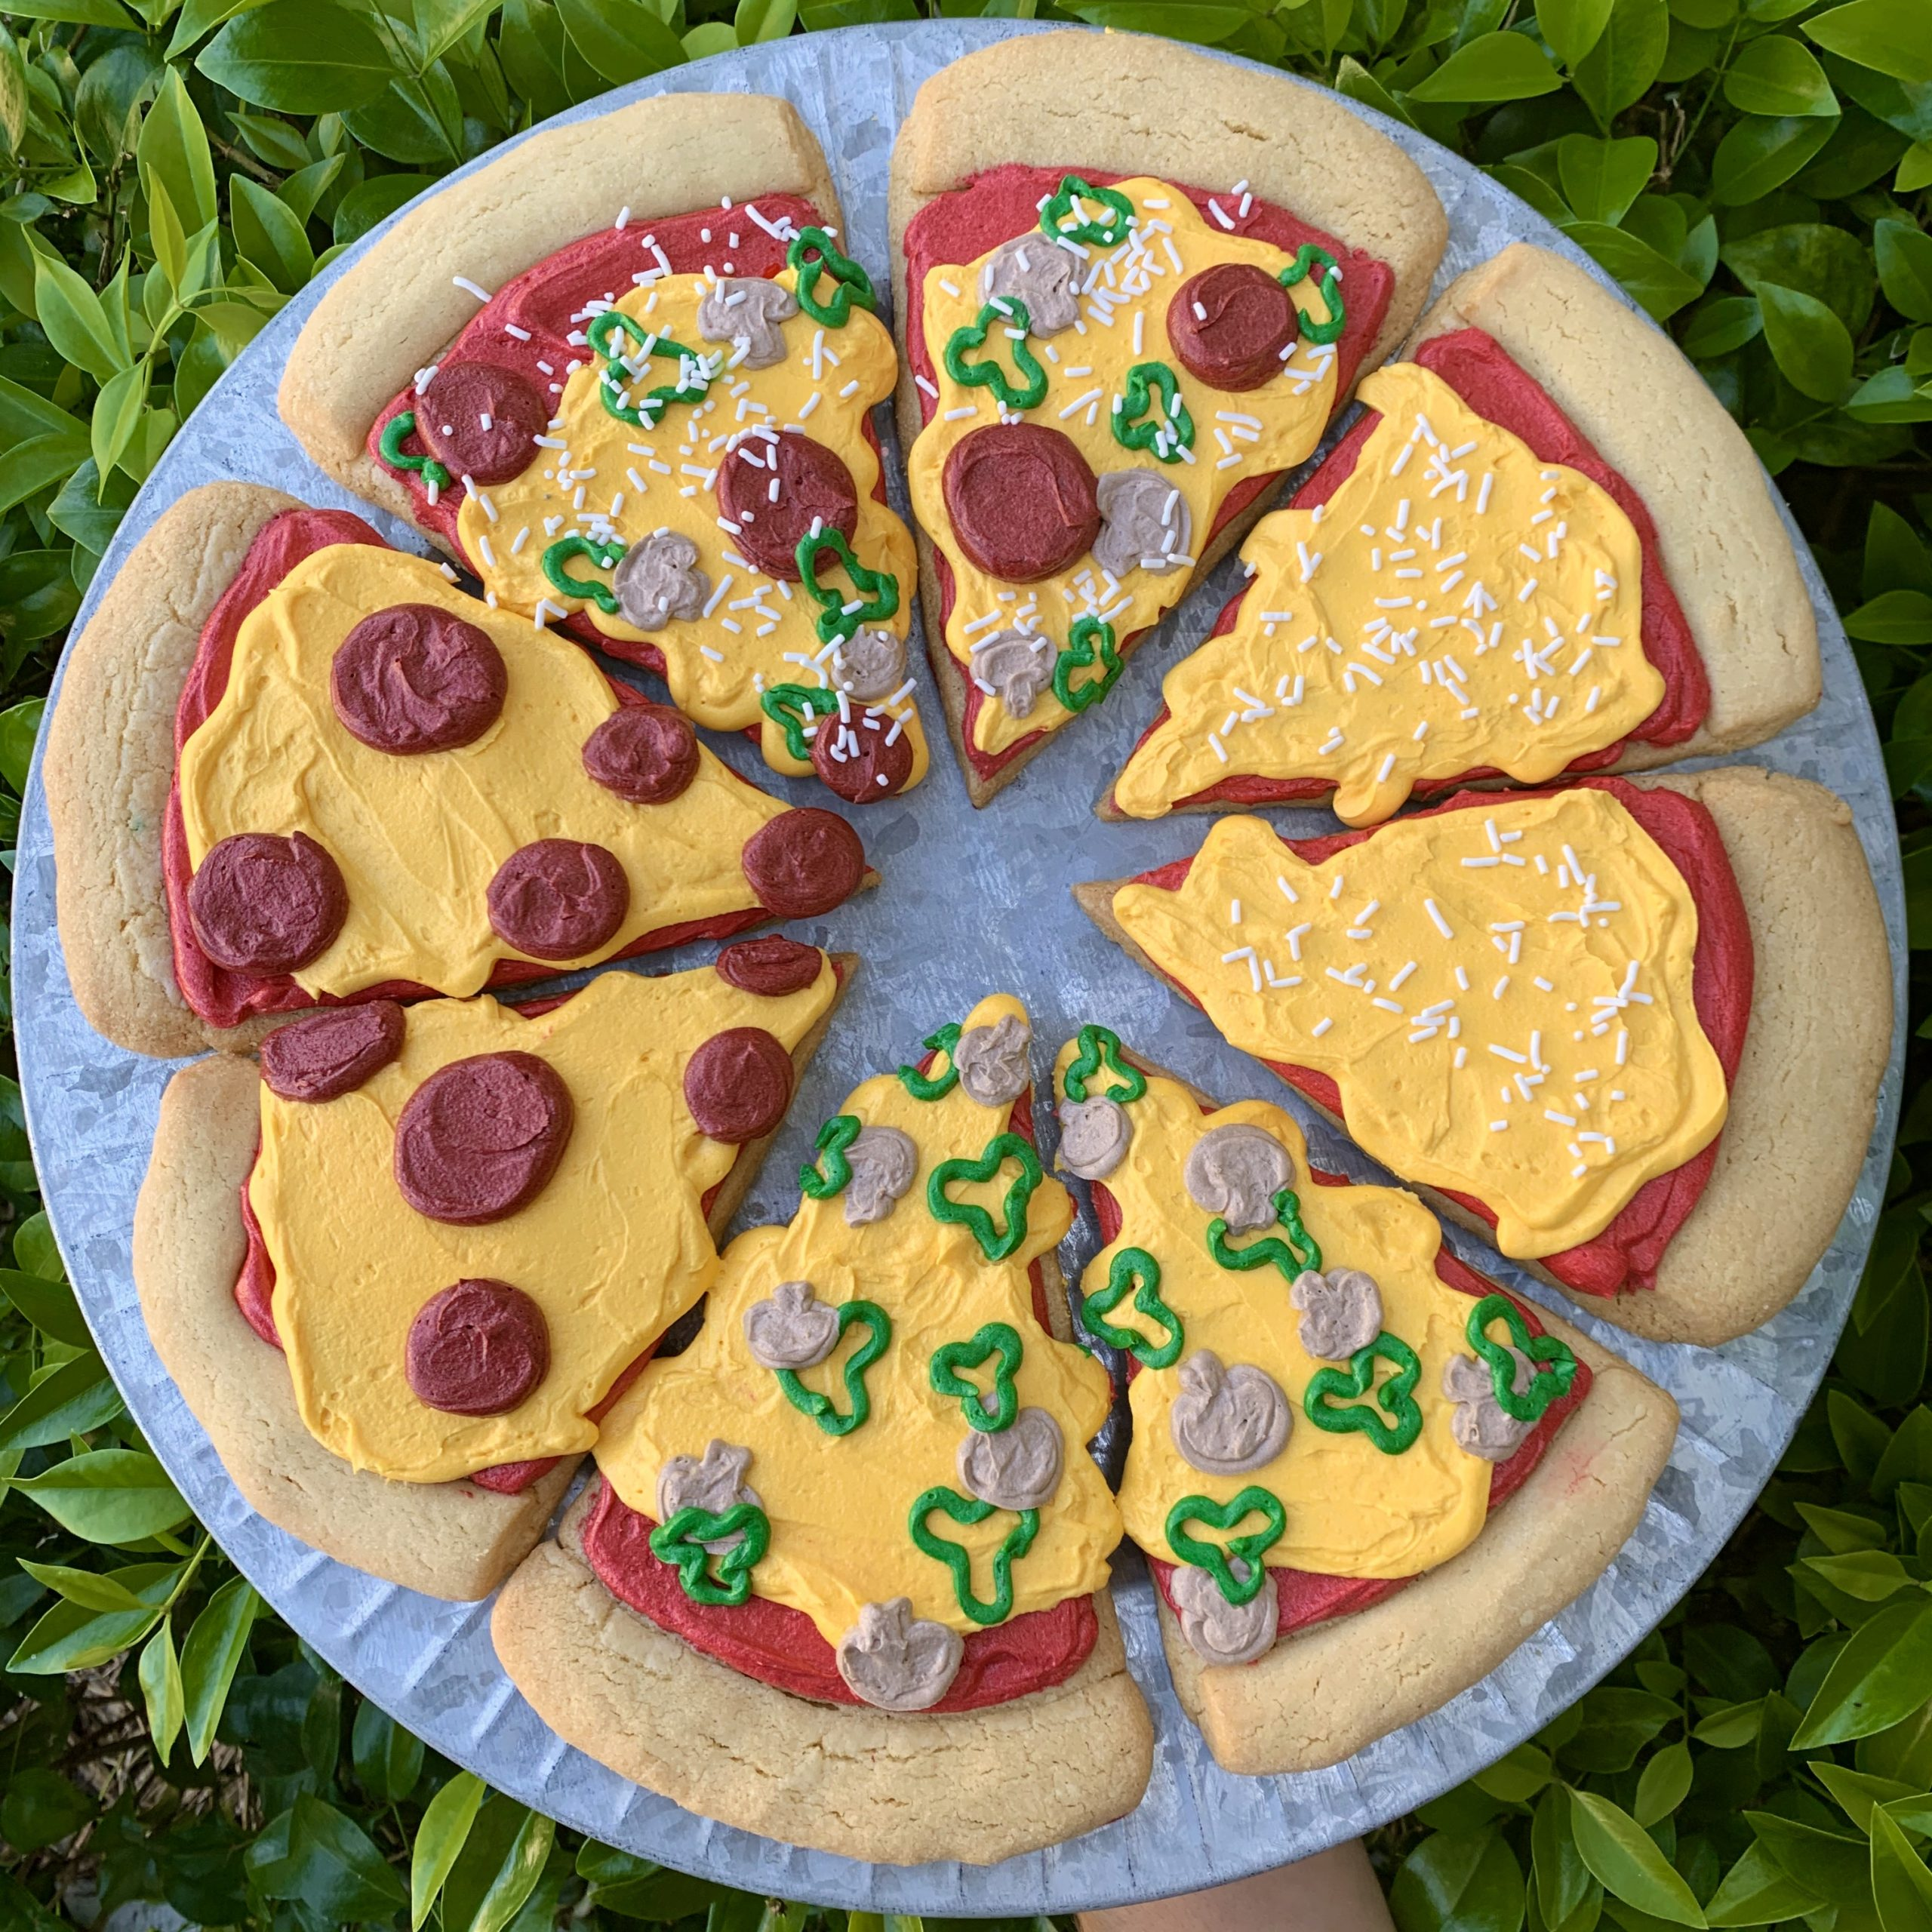 Week 8: Pizza Party Cookie & Decorating